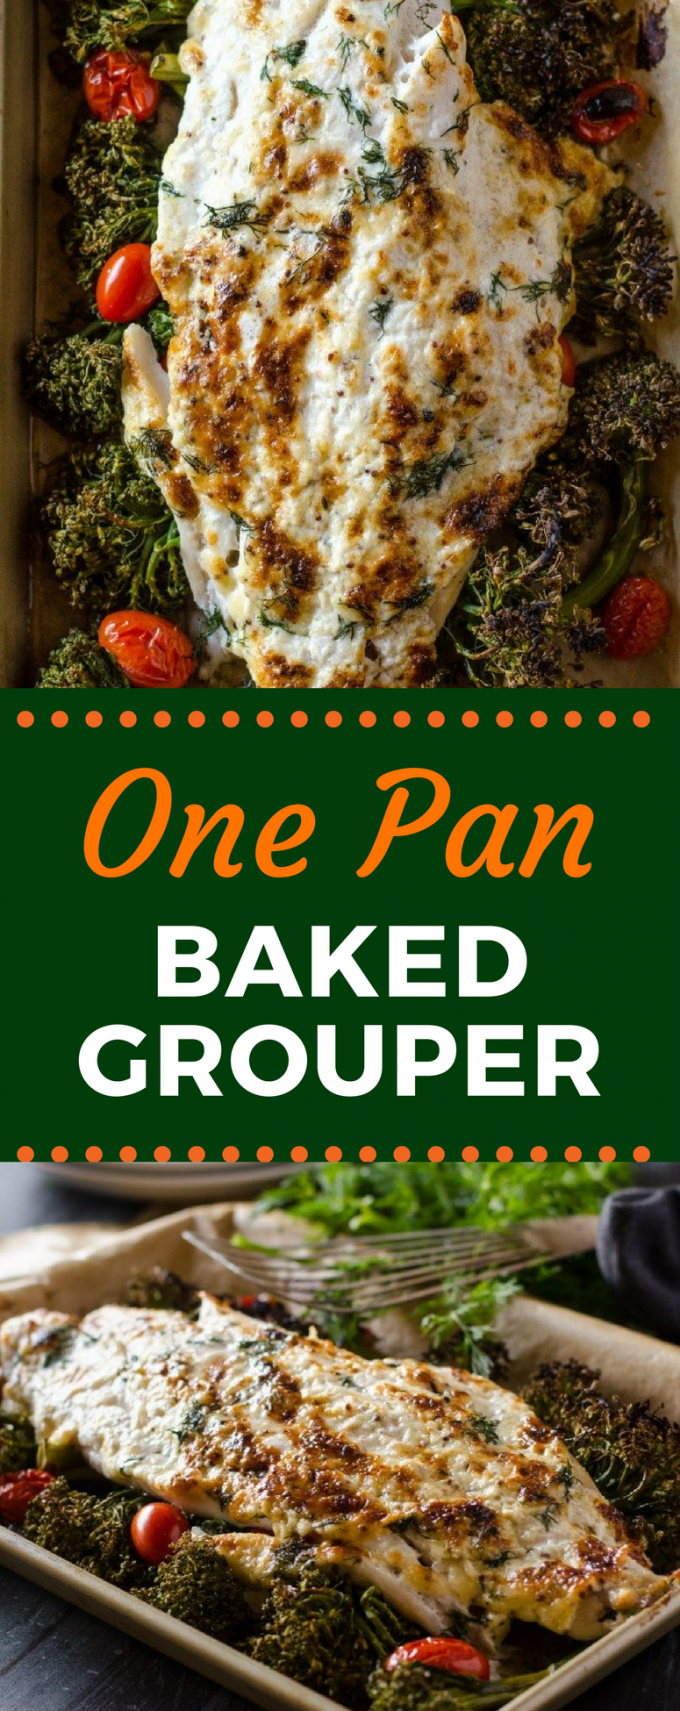 This One Pan Baked Grouper is the perfect fish recipe for Lent! It's baked right in the oven with a delicious sauce to make a flavorful meal that everyone will love! #fishfriday #lentendinner #seafoodrecipes #weeknightdinner #gogogogourmet